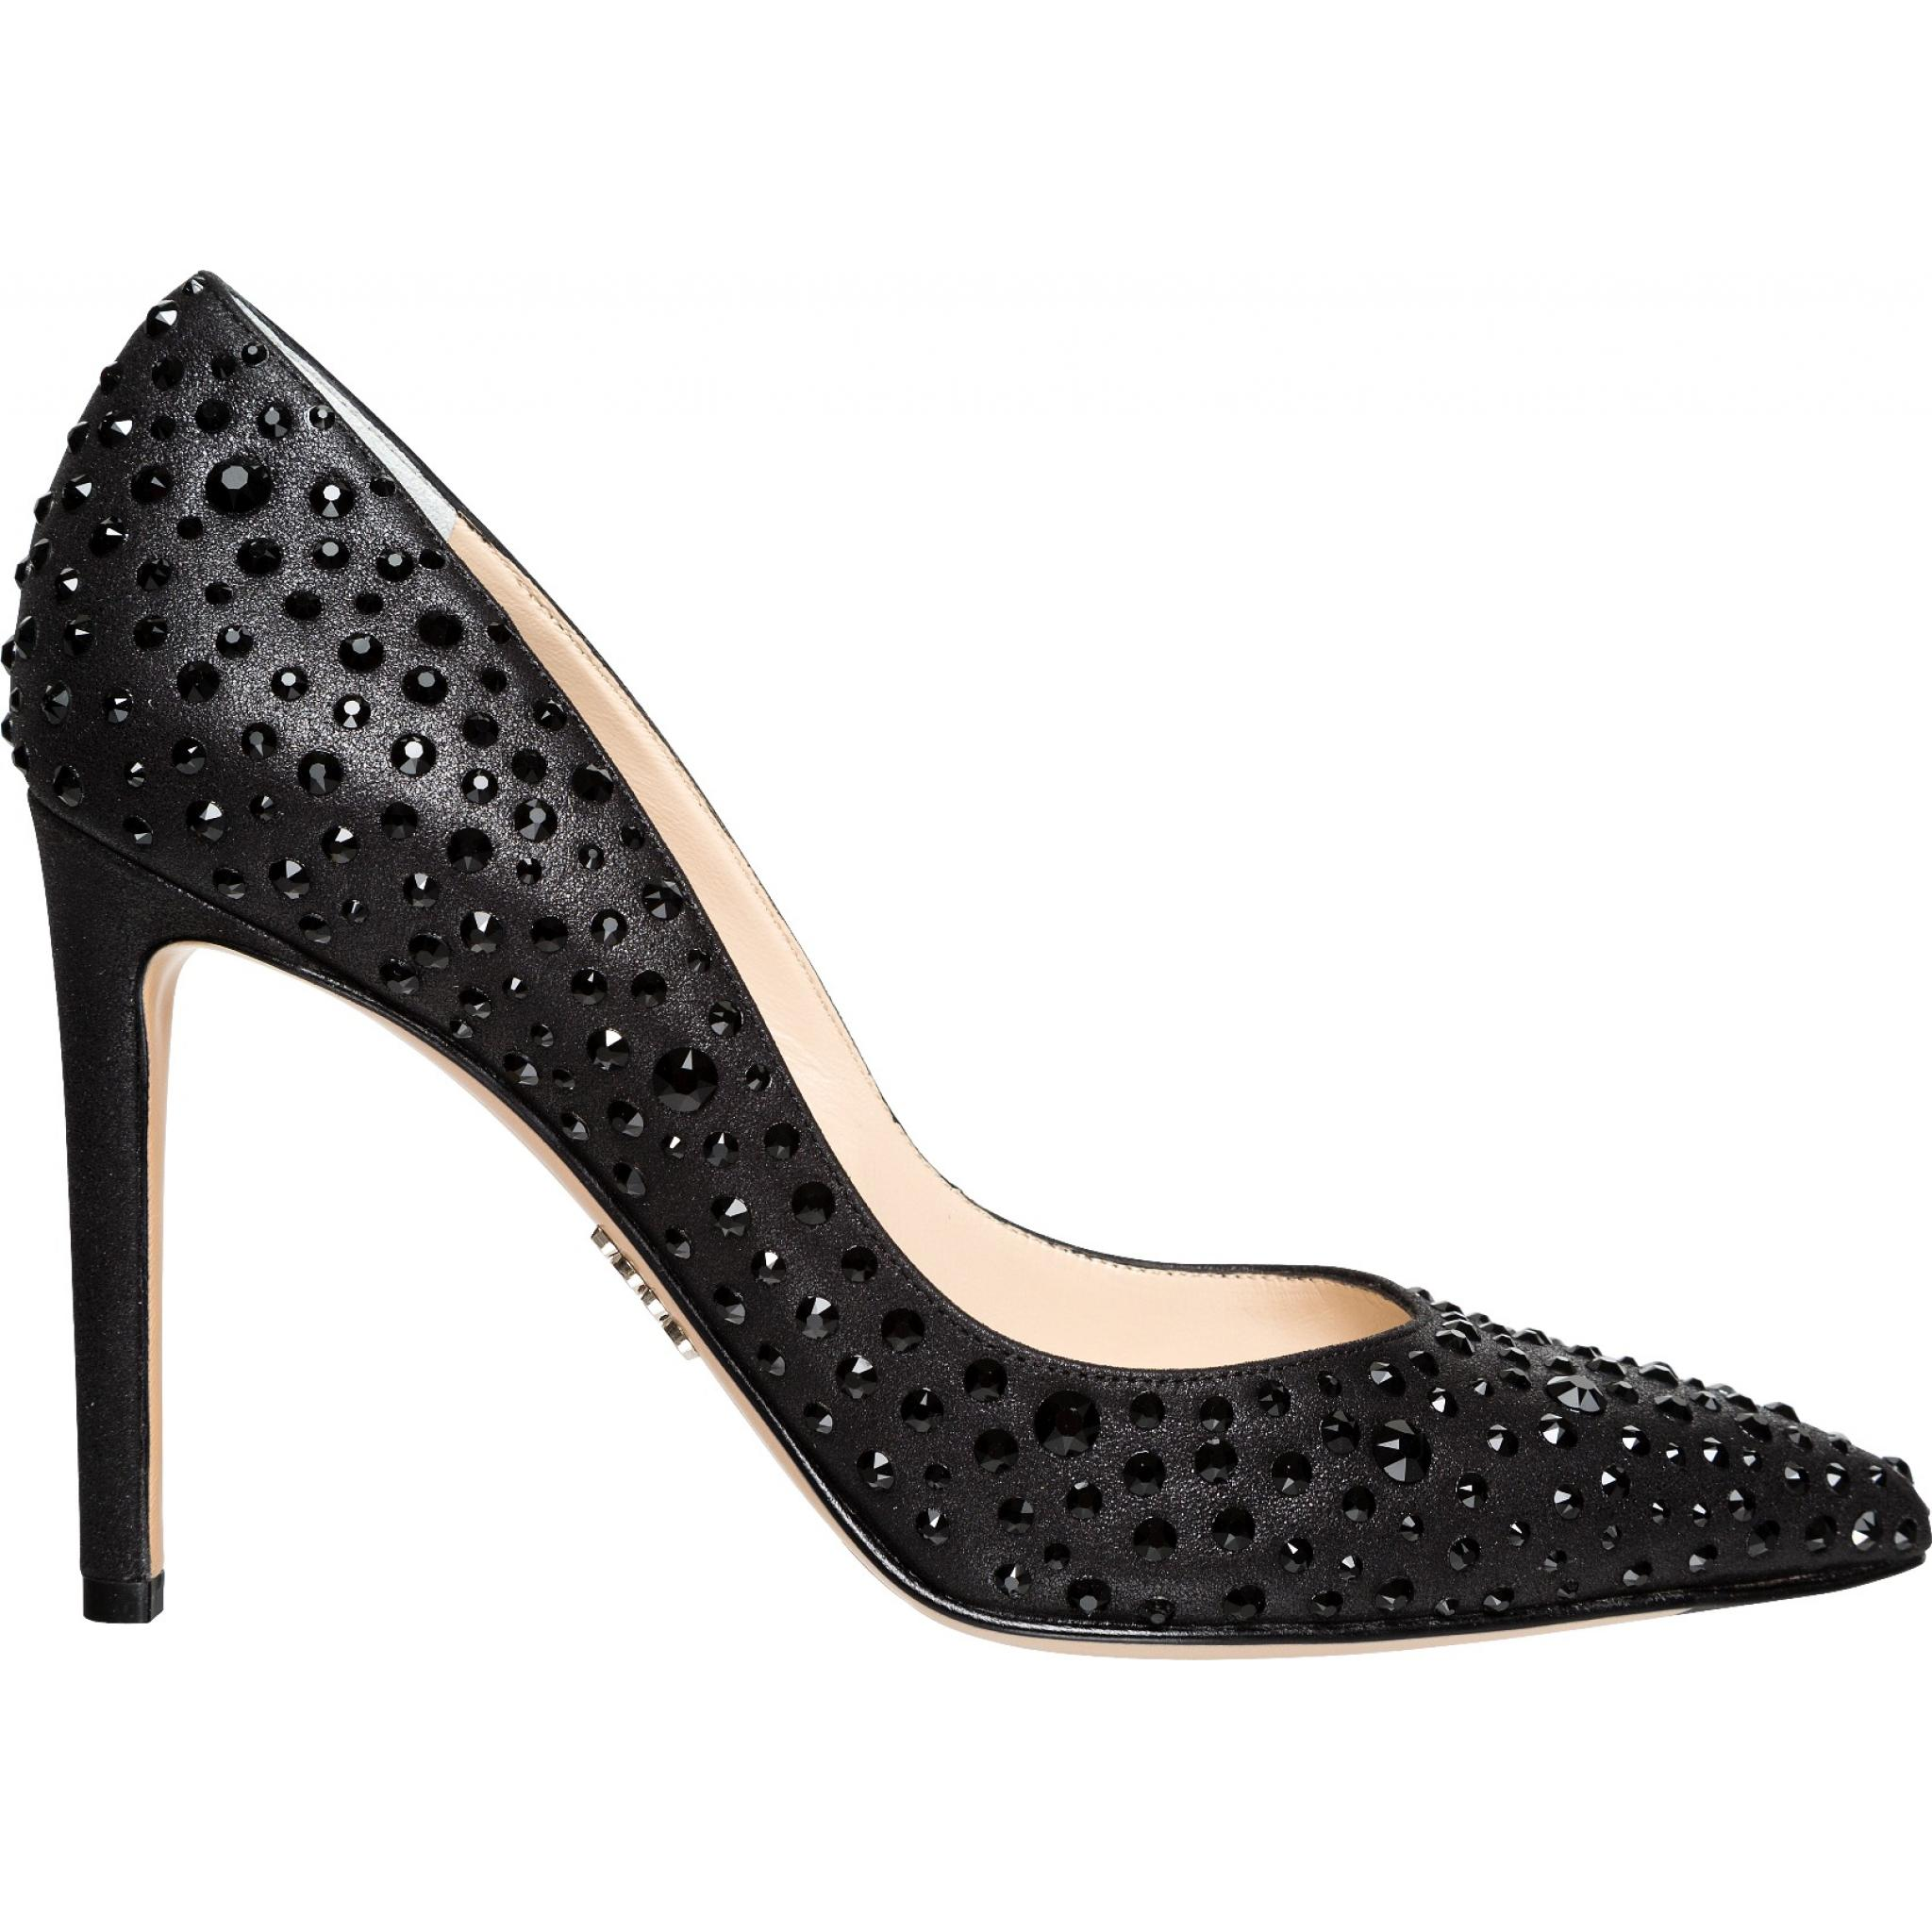 Pumps in Metallic-Leder mit Strass-Besatz-0